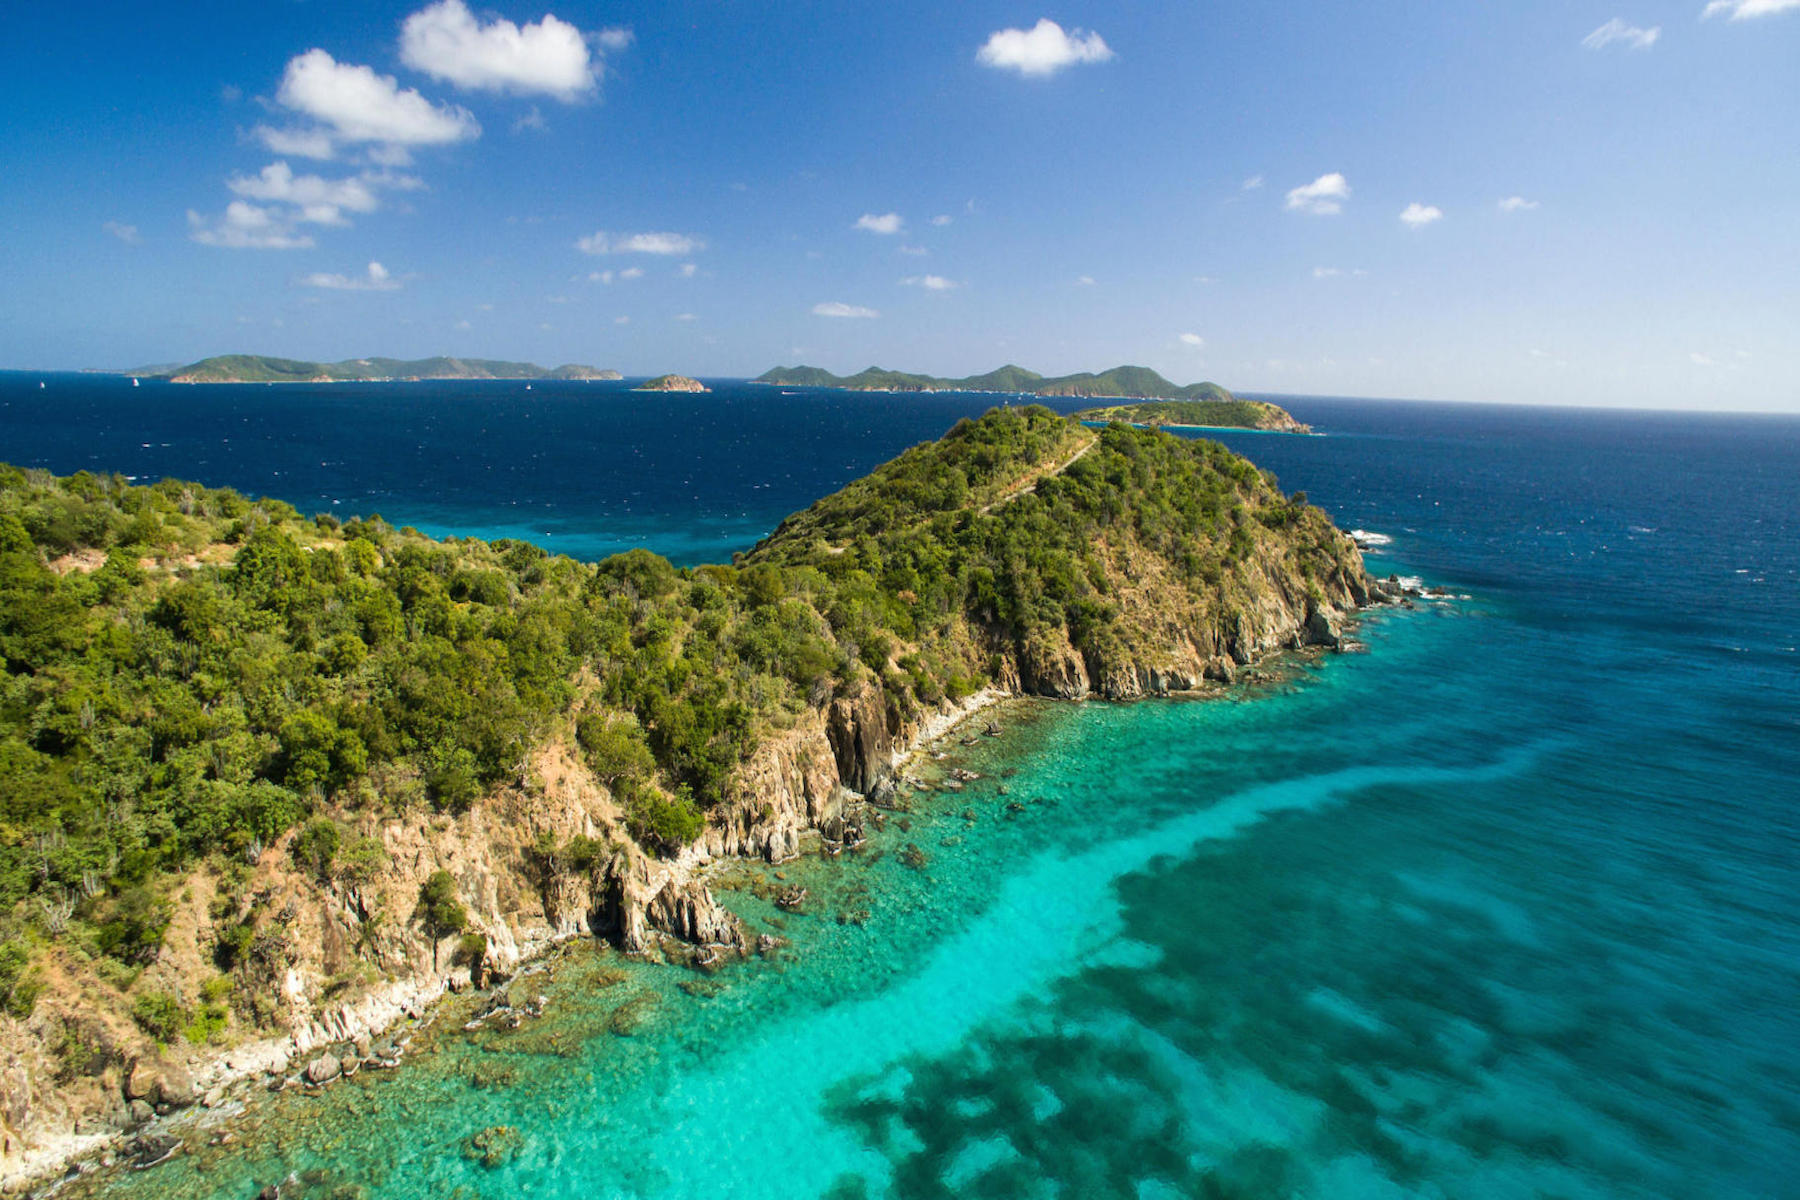 Land for Sale at 6A-1-2+ Hansen Bay 6A-1-2+ Hansen Bay St John, Virgin Islands 00830 United States Virgin Islands